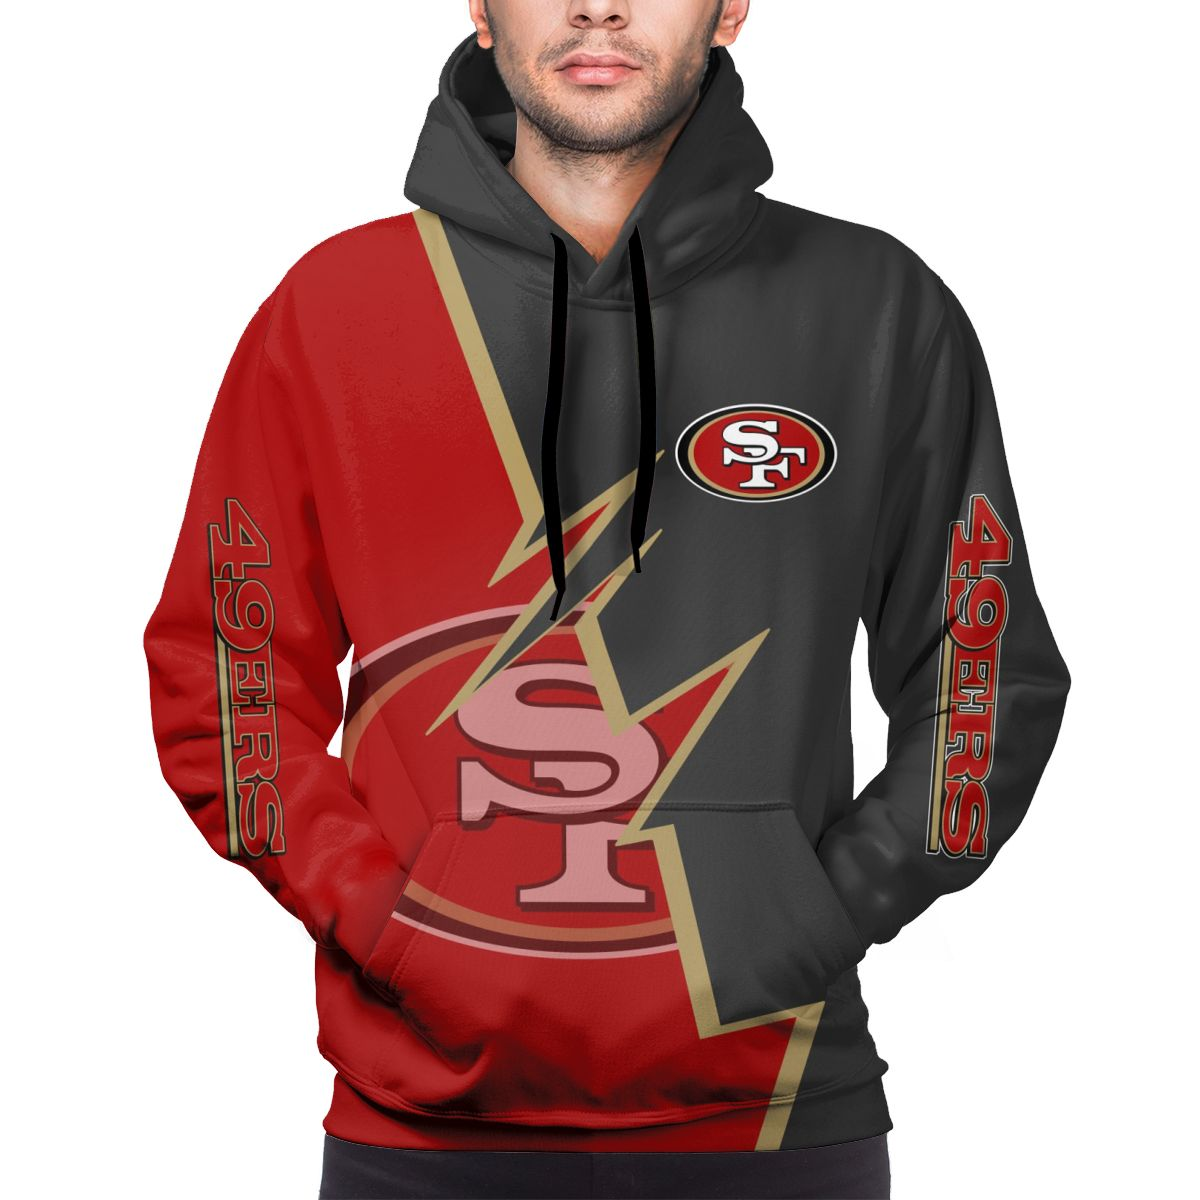 49ers Customize Hoodies For Men Pullover Sweatshirt